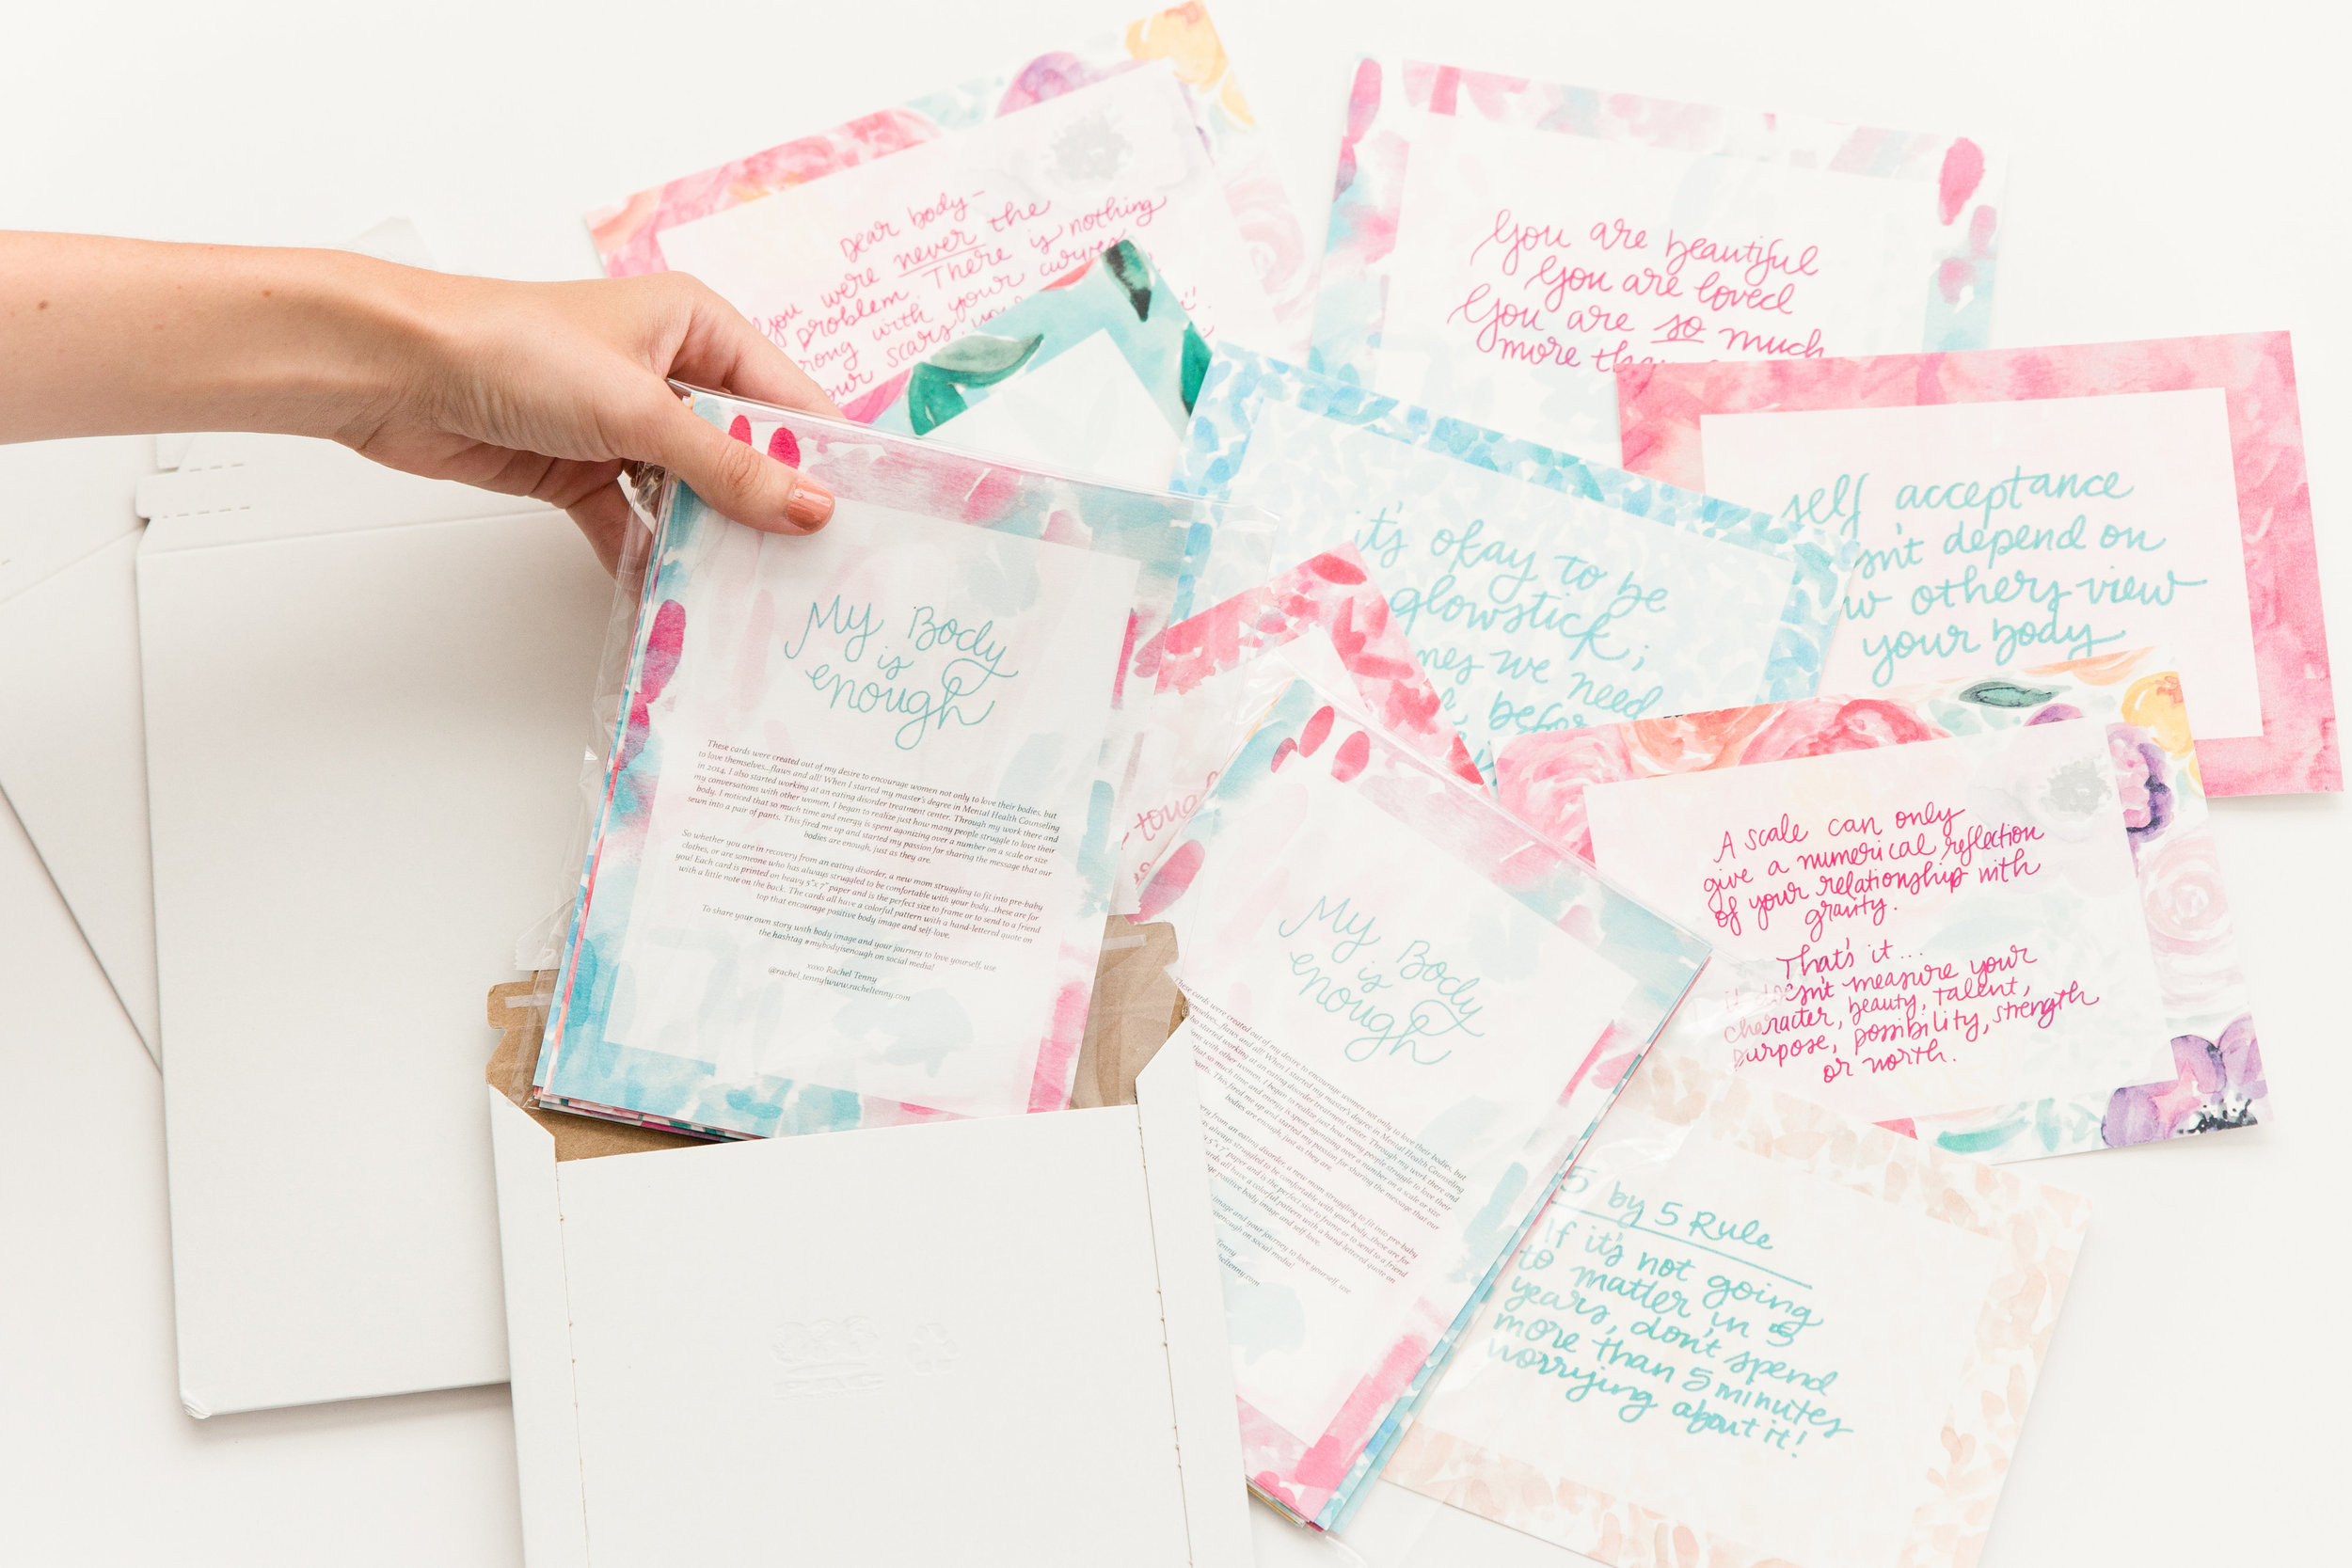 My Body is Enough Project Encouraging Note Sets by Rachel Tenny